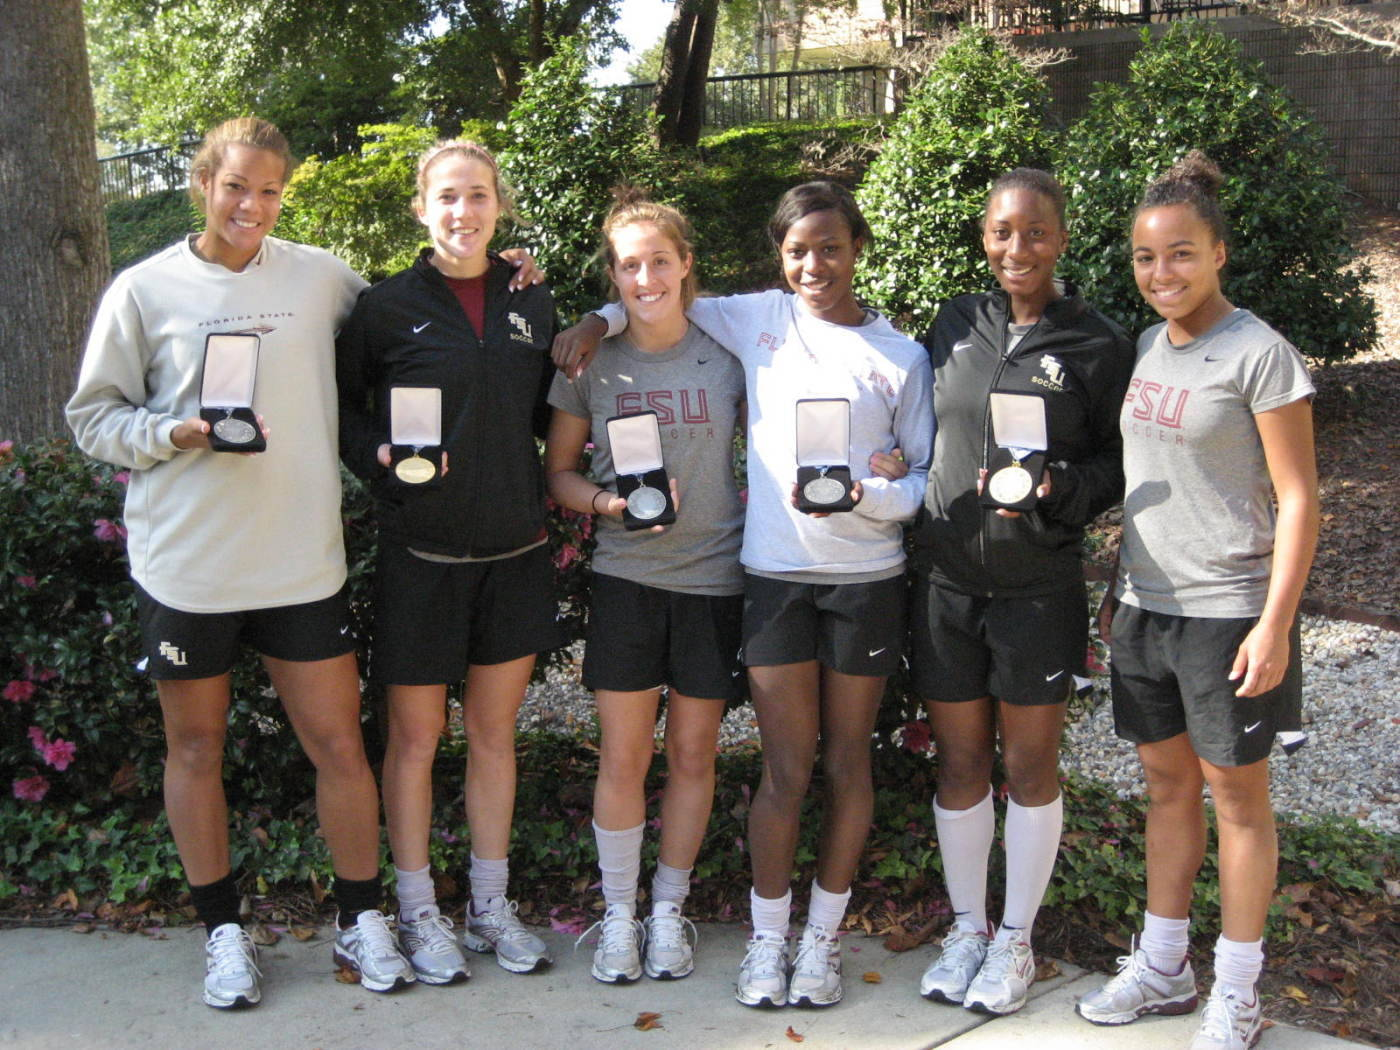 The 2009 FSU All-ACC honorees (L to R): Toni Pressley, Becky Edwards, Amanda DaCosta, Jessica Price, Tiffany McCarty and Ines Jaurena.